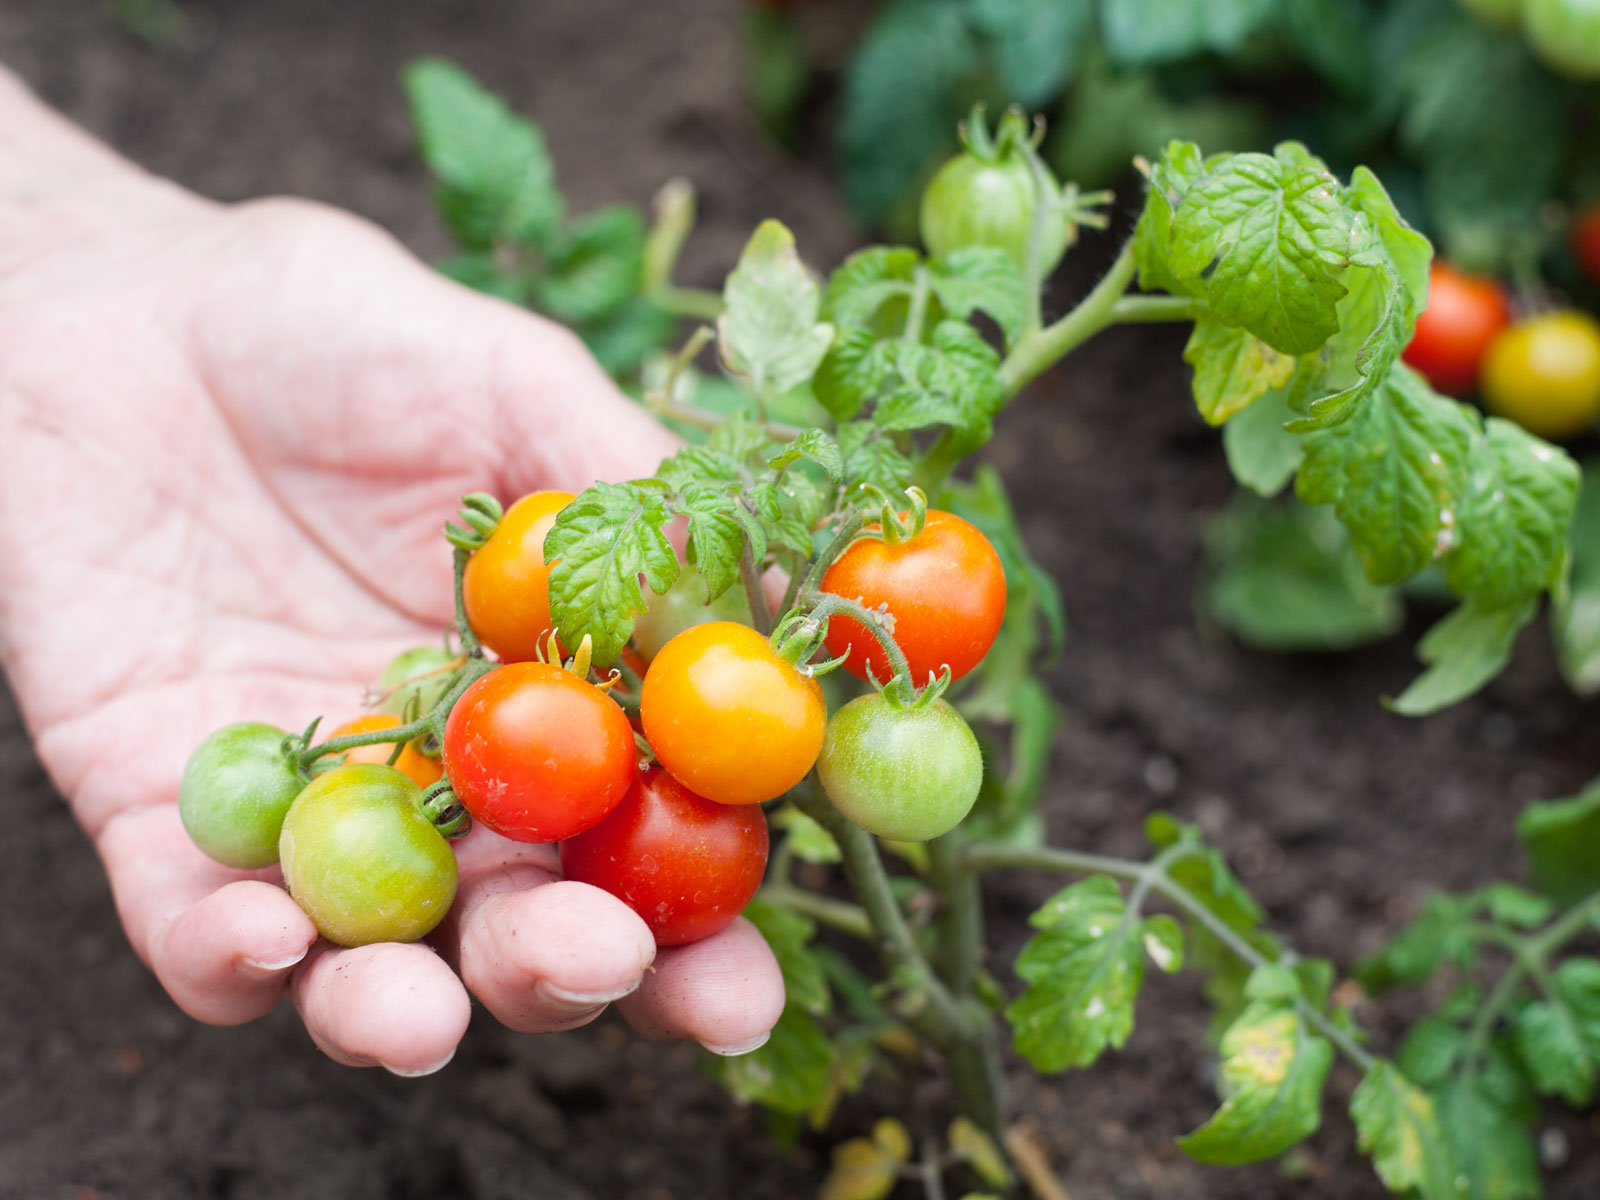 tomatoes in a vegetable garden